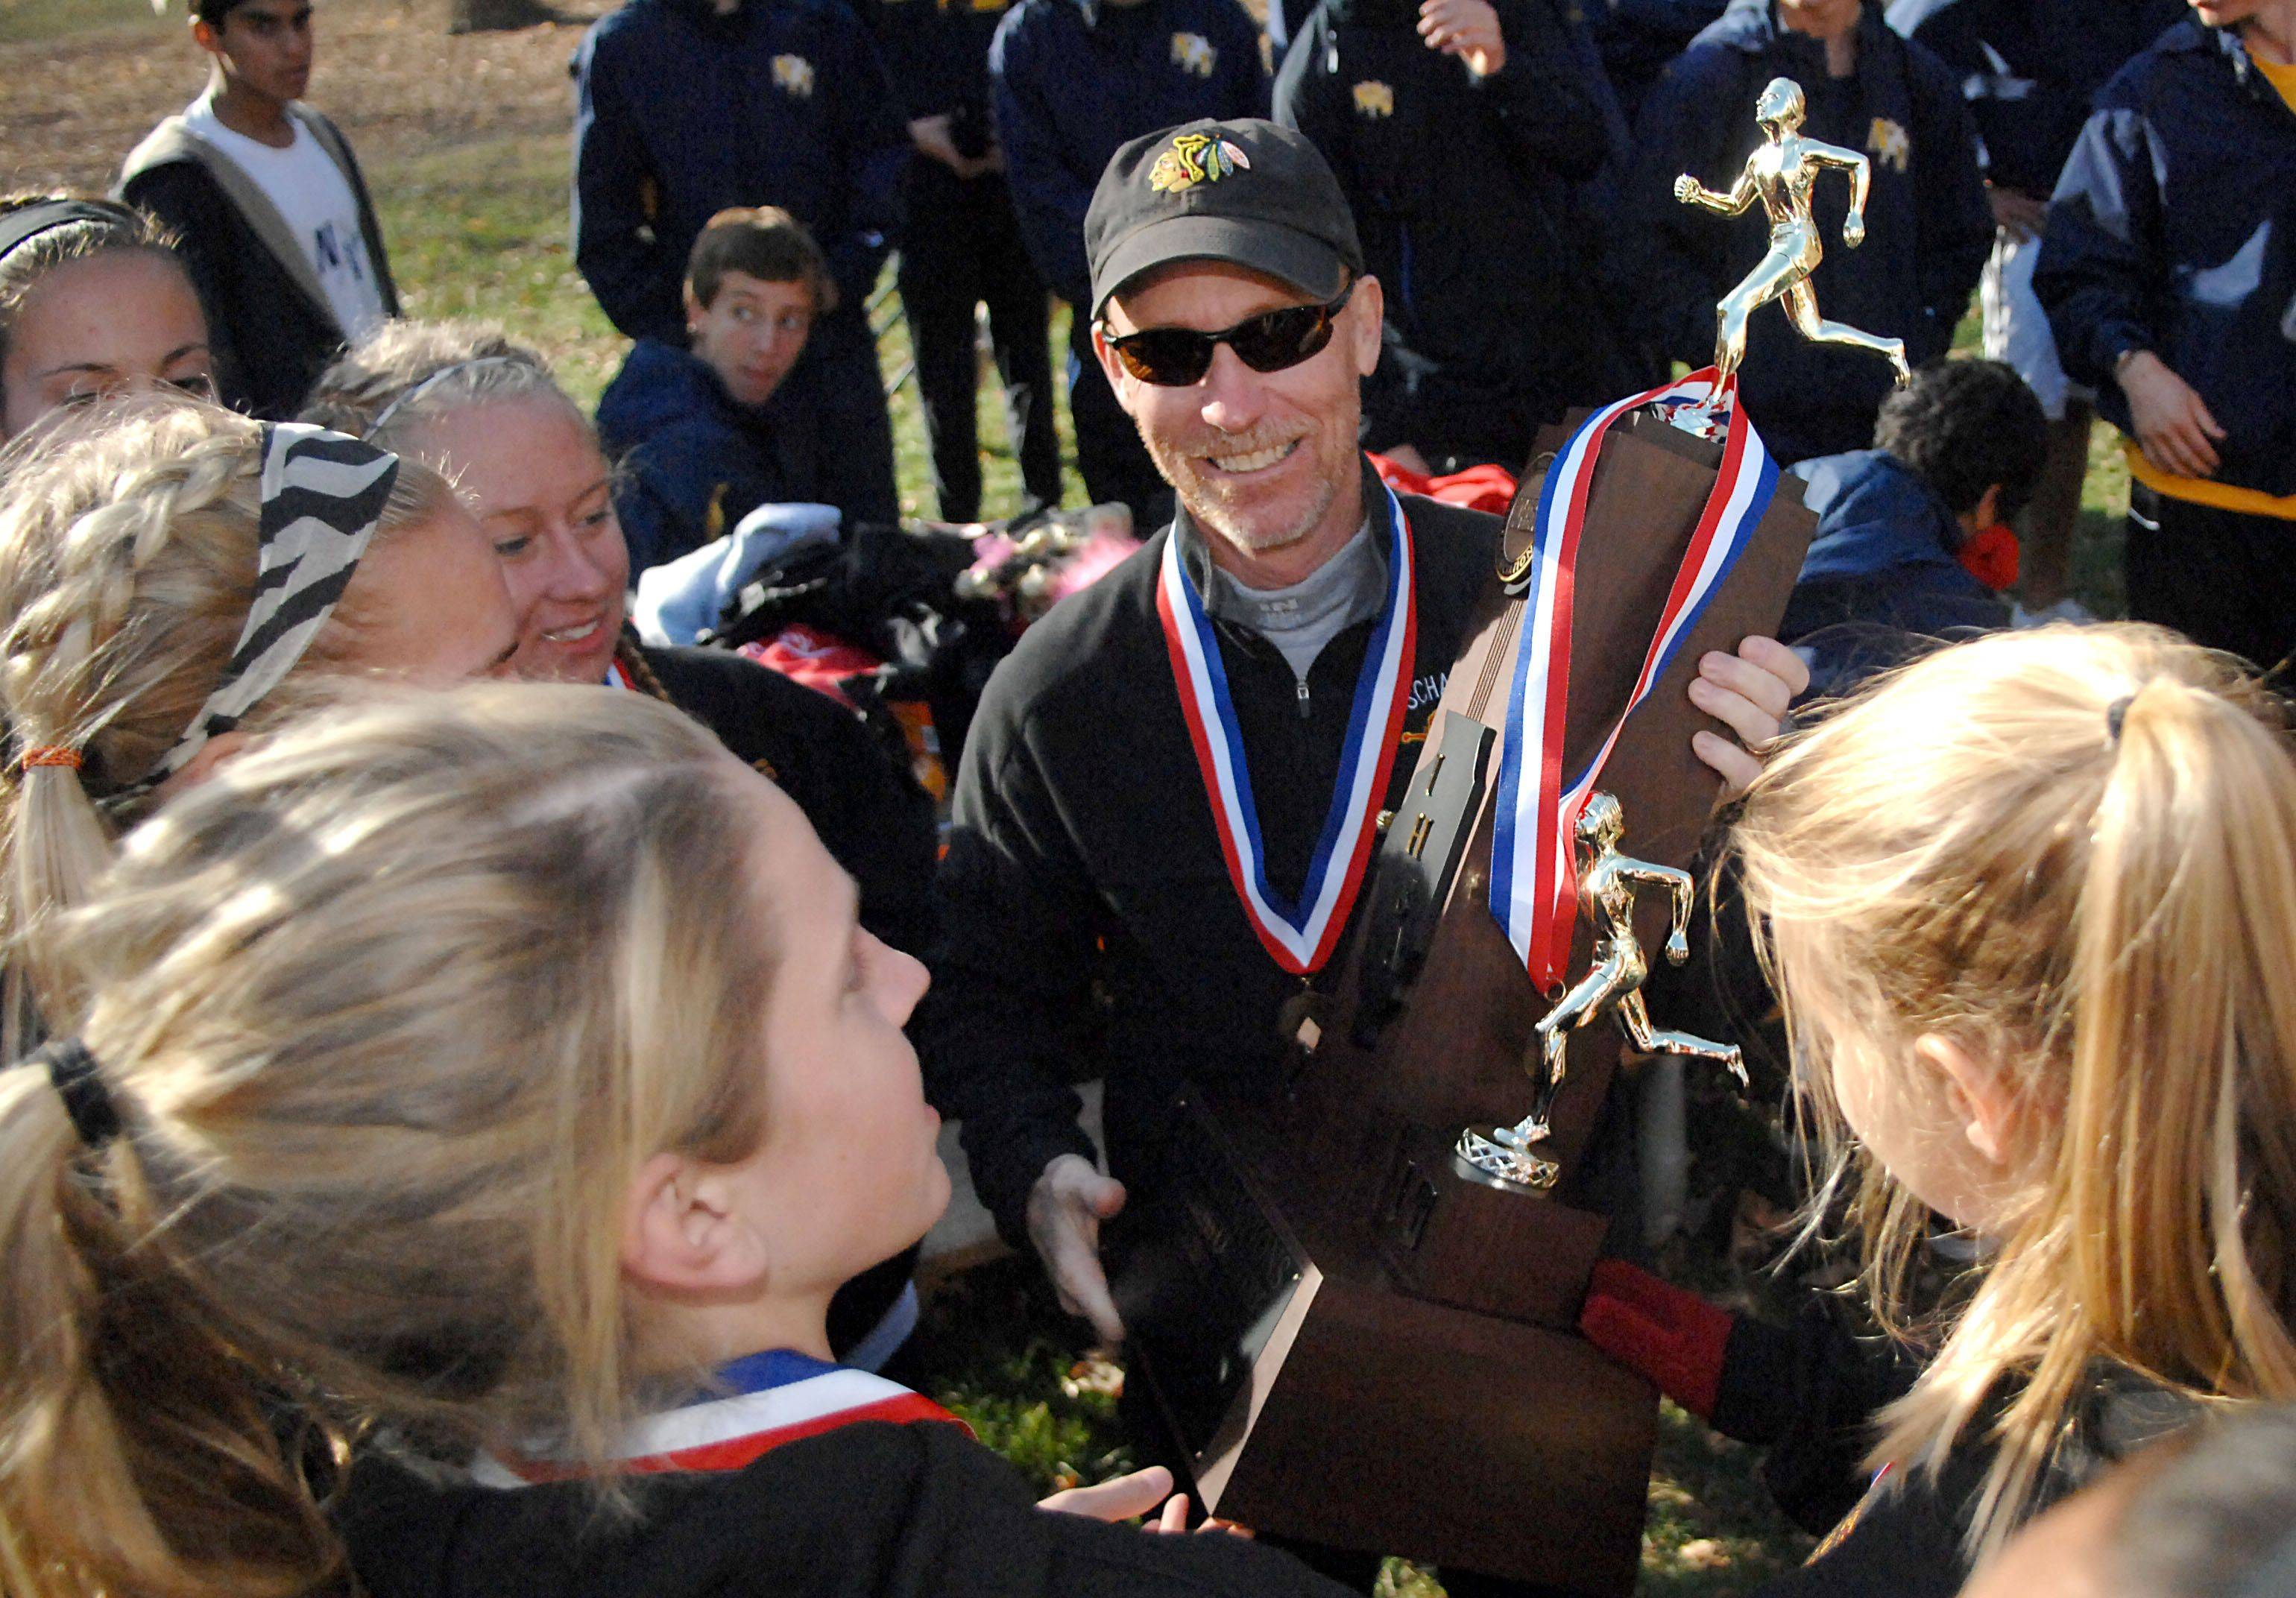 Schaumburg head coach Jon Macnider smiles wide as the girls hand him their first place 3A cross country state trophy after the awards assembly at Detweliler Park in Peoria on Saturday, November 6.